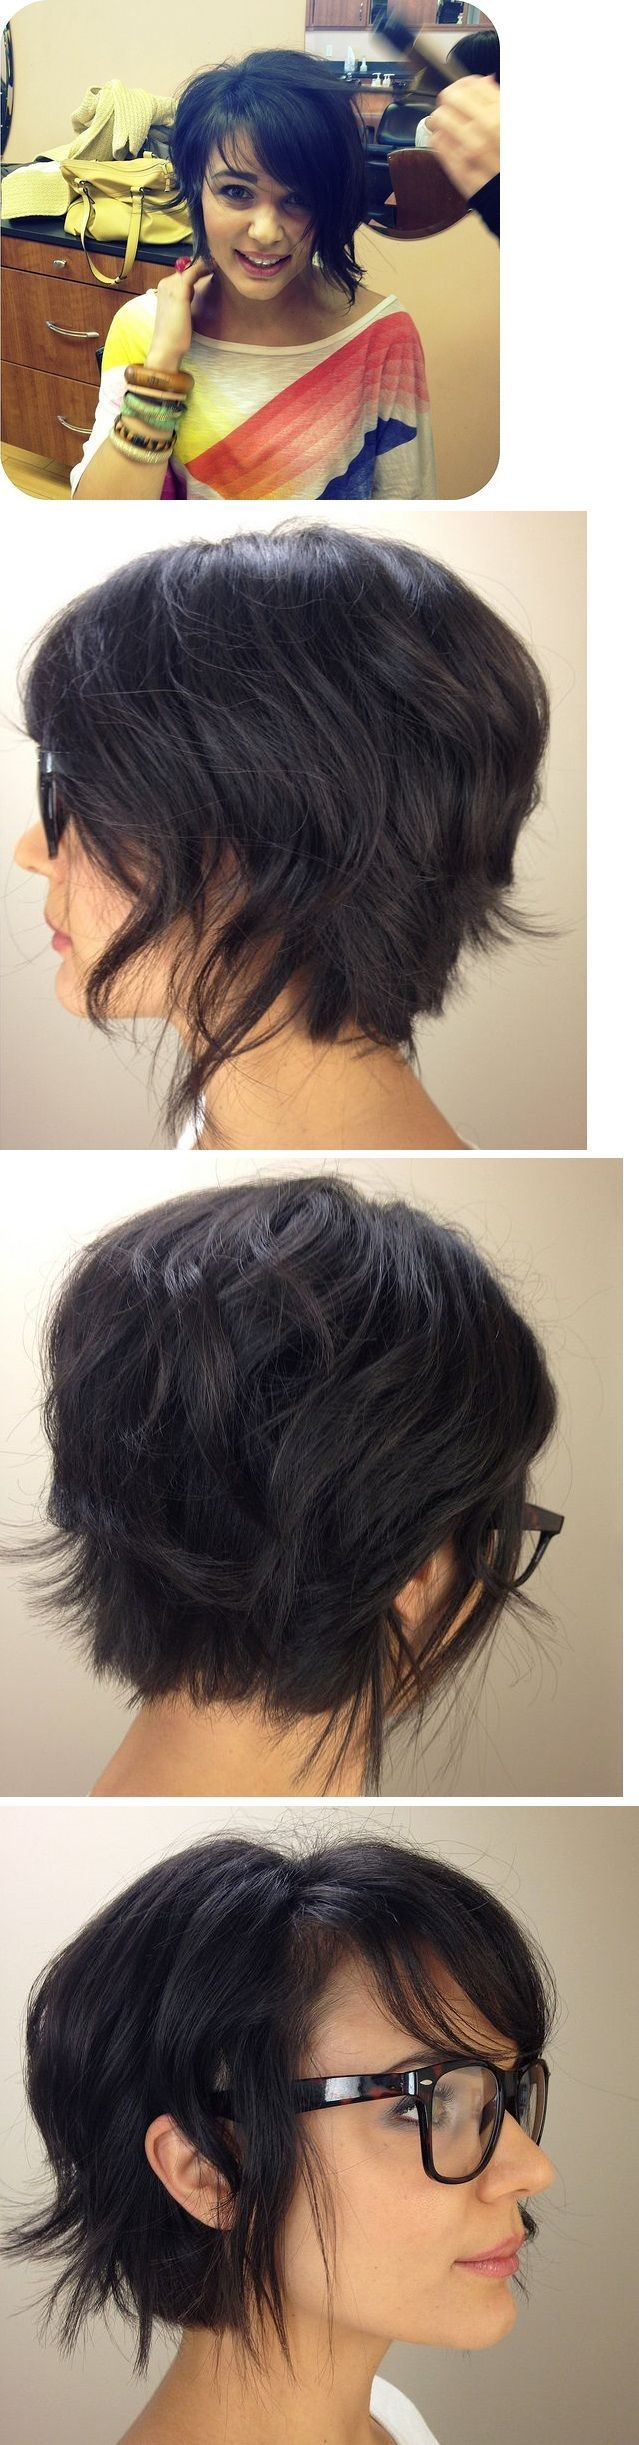 "7ca8232084c18ff802fb01d4e2f1c66d.jpg (639×2445) [ ""Pixie Short Hair Styles Back Pictures.I kinda love this one"", ""29 Hairstyling Hacks Every Girl Should Know"", ""In-between style while growing out my hair"", ""Love this but not the longer piece in the front"", ""Need a curling iron"", ""Love this style, just need to go back to make it a bit shorter next time!"", ""long pixie cut but with blonde highlights"", ""& 24 would be great for my hair!"", ""unsure if this would work on me though.""..."